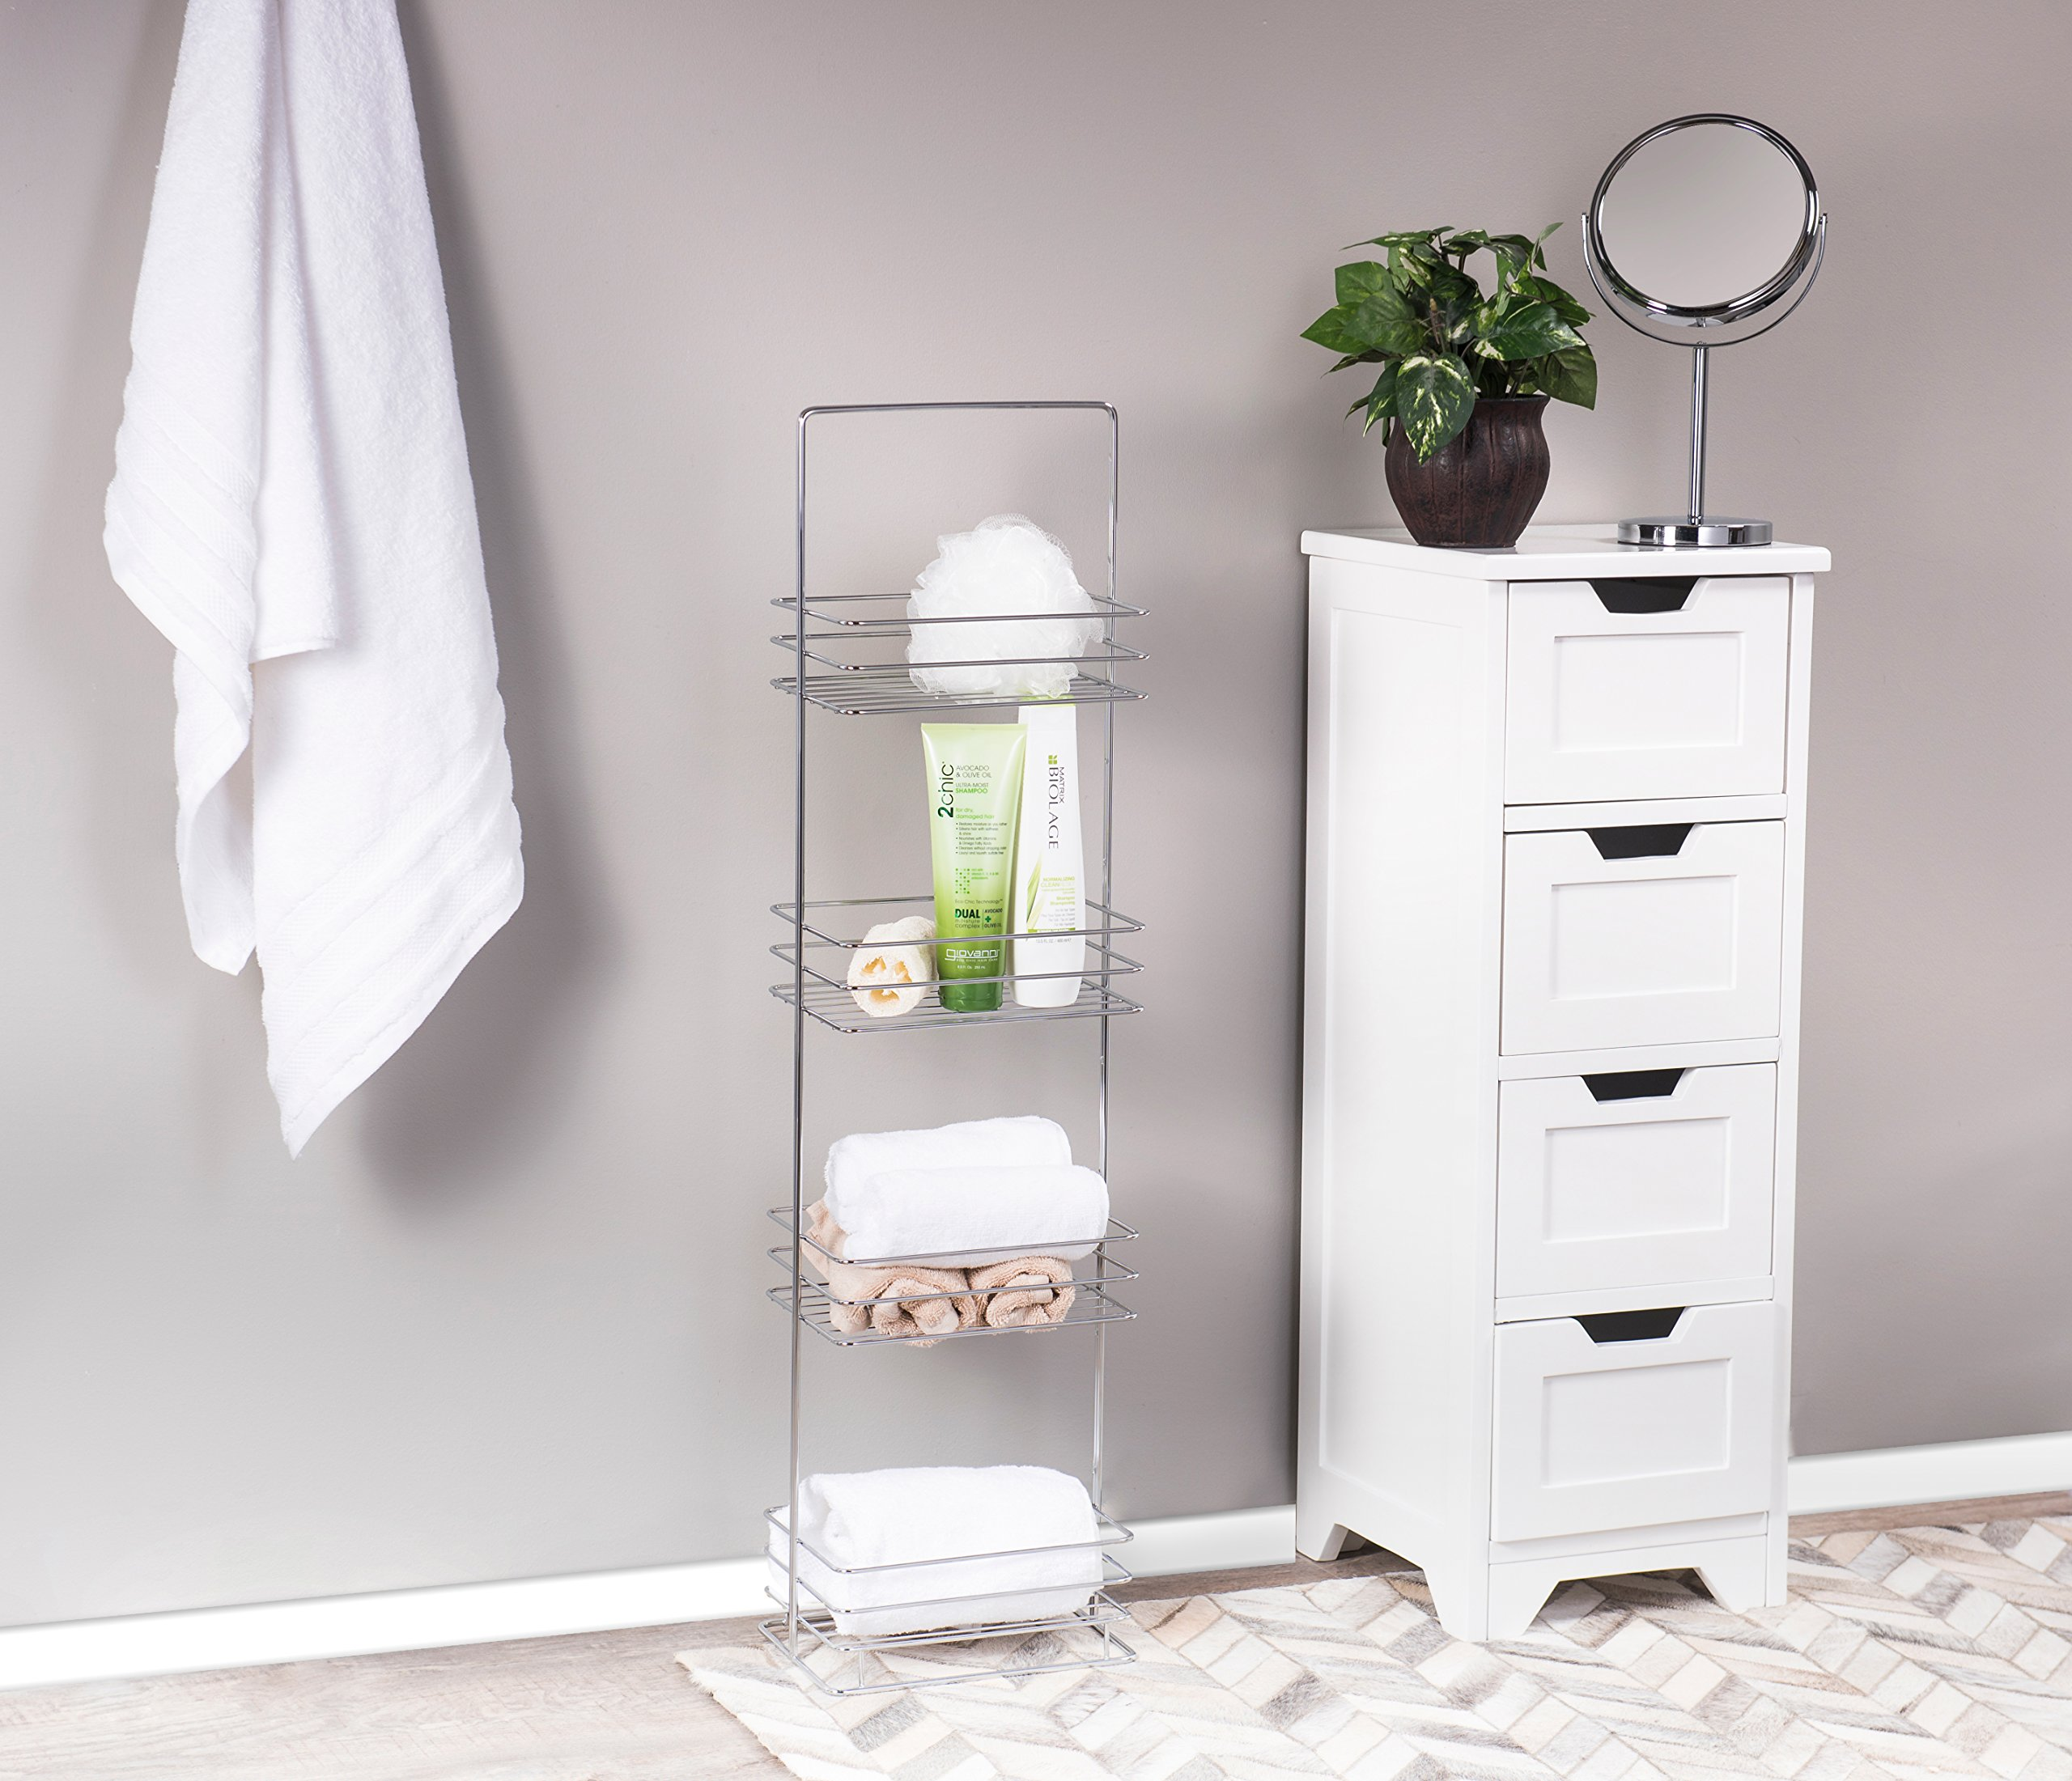 AMG and Enchante Accessories Free Standing Bathroom Spa Tower Storage Caddy, FC100002 CHR, Chrome by AMG (Image #2)